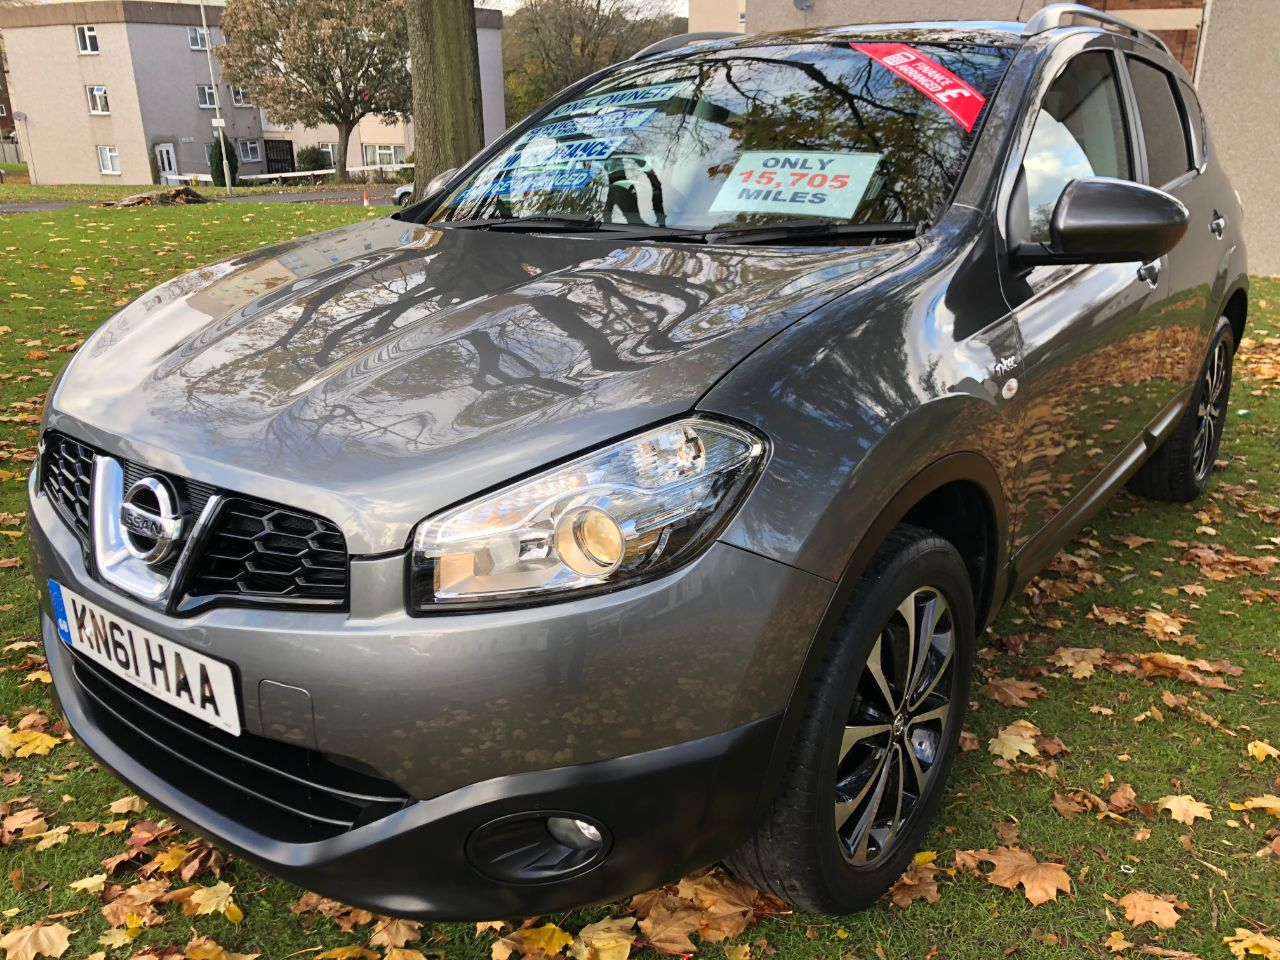 Nissan Qashqai 1.6 [117] N-Tec 5dr *ONLY 15k MILES* *FSH* *PANORAMIC ROOF* *ONE OWNER at Halesowen Autos Halesowen